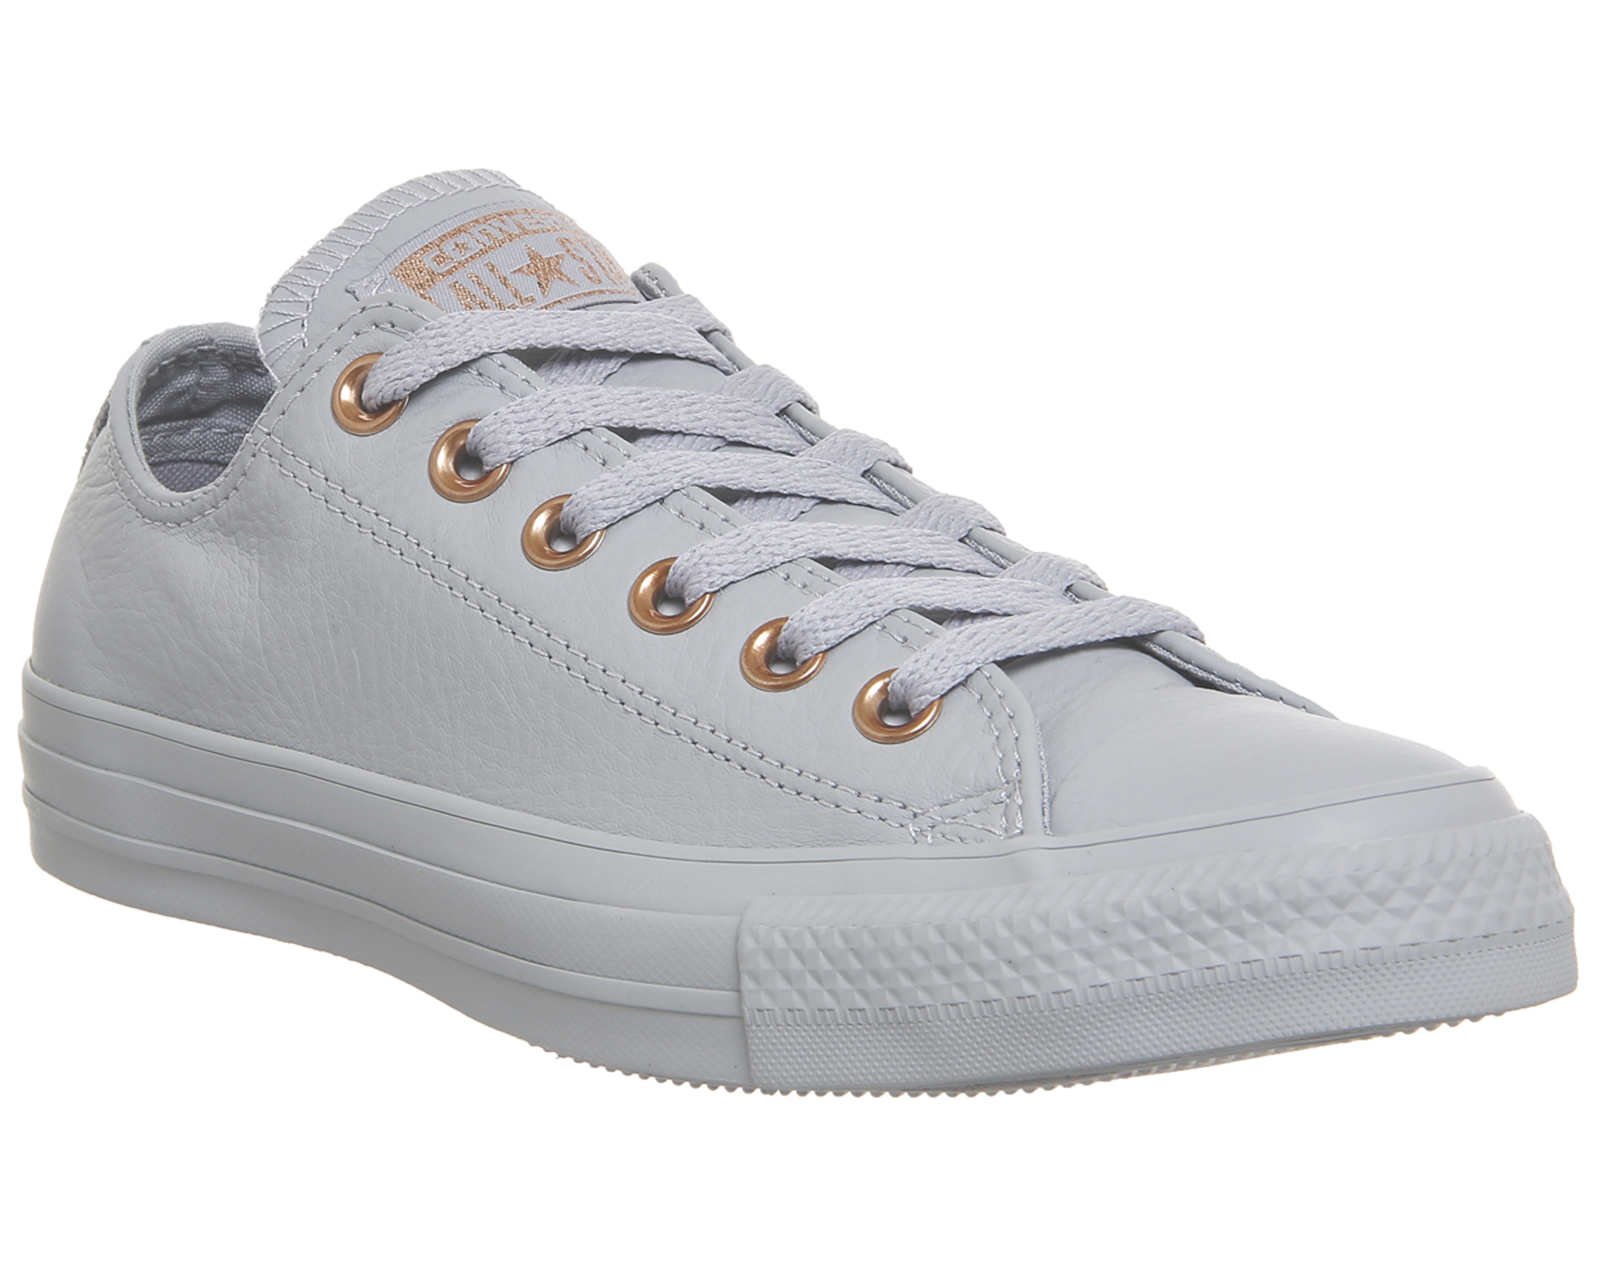 Sentinel Womens Converse All Star Low Leather WOLF GREY BLUSH GOLD  EXCLUSIVE Trainers Sho 137aa6506